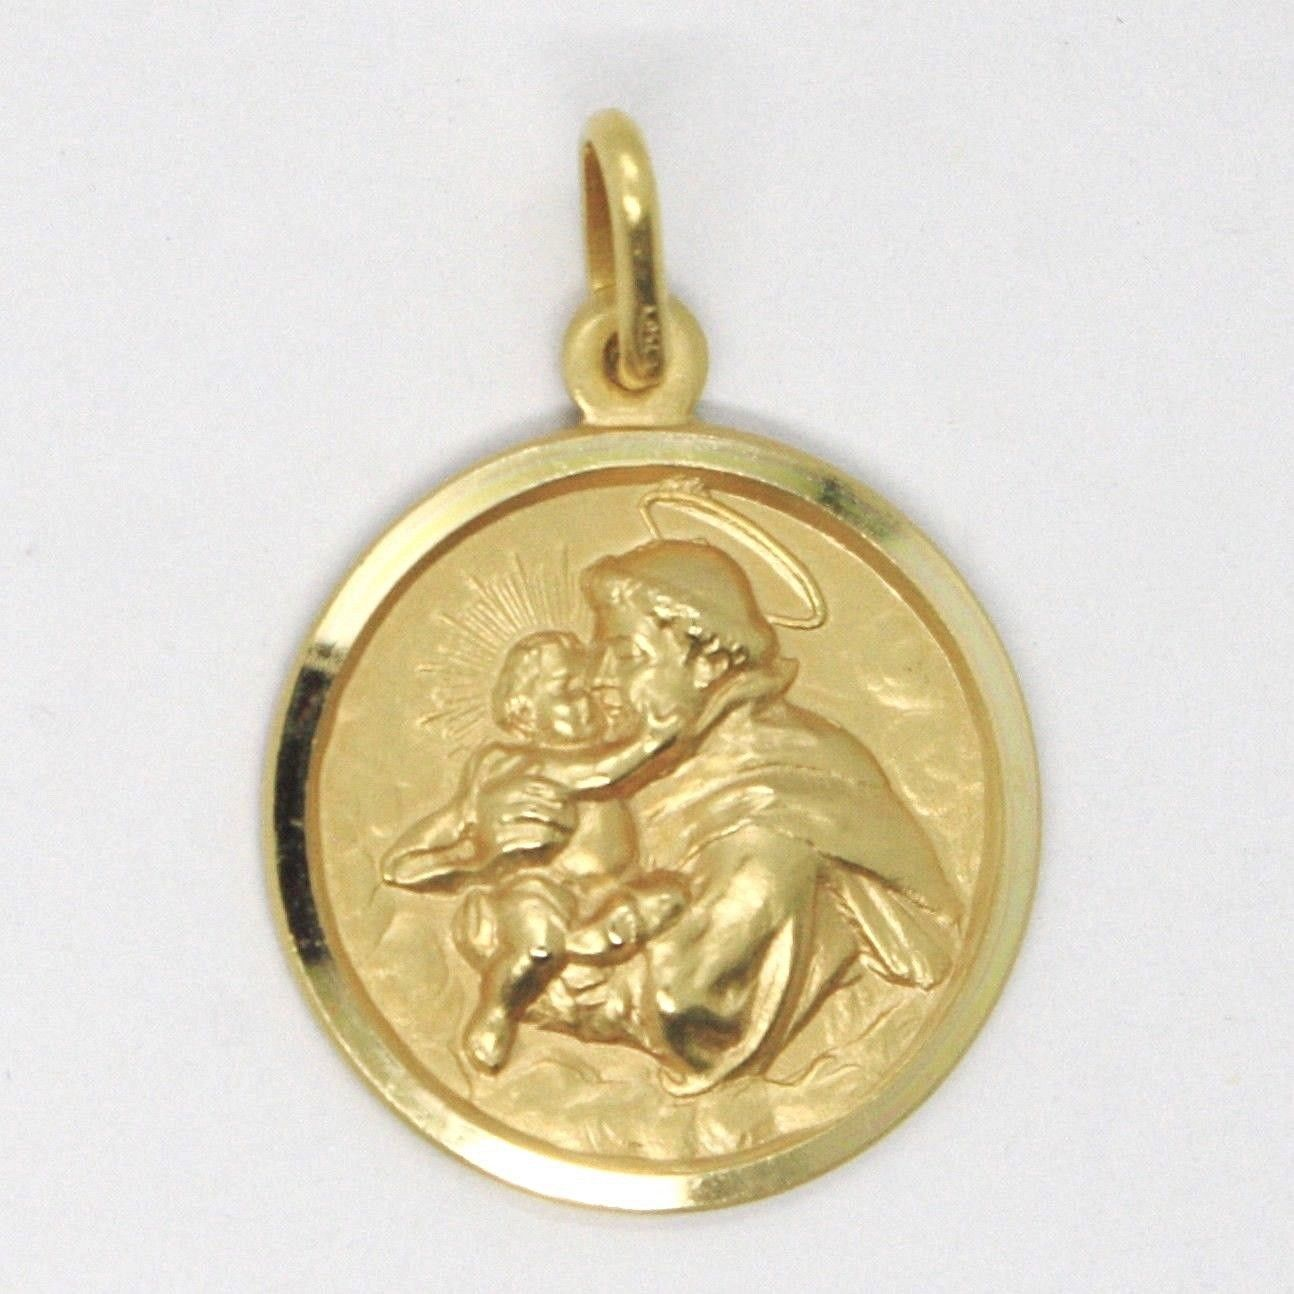 18K YELLOW GOLD ST SAINT ANTHONY PADUA SANT ANTONIO MEDAL MADE IN ITALY, 17 MM